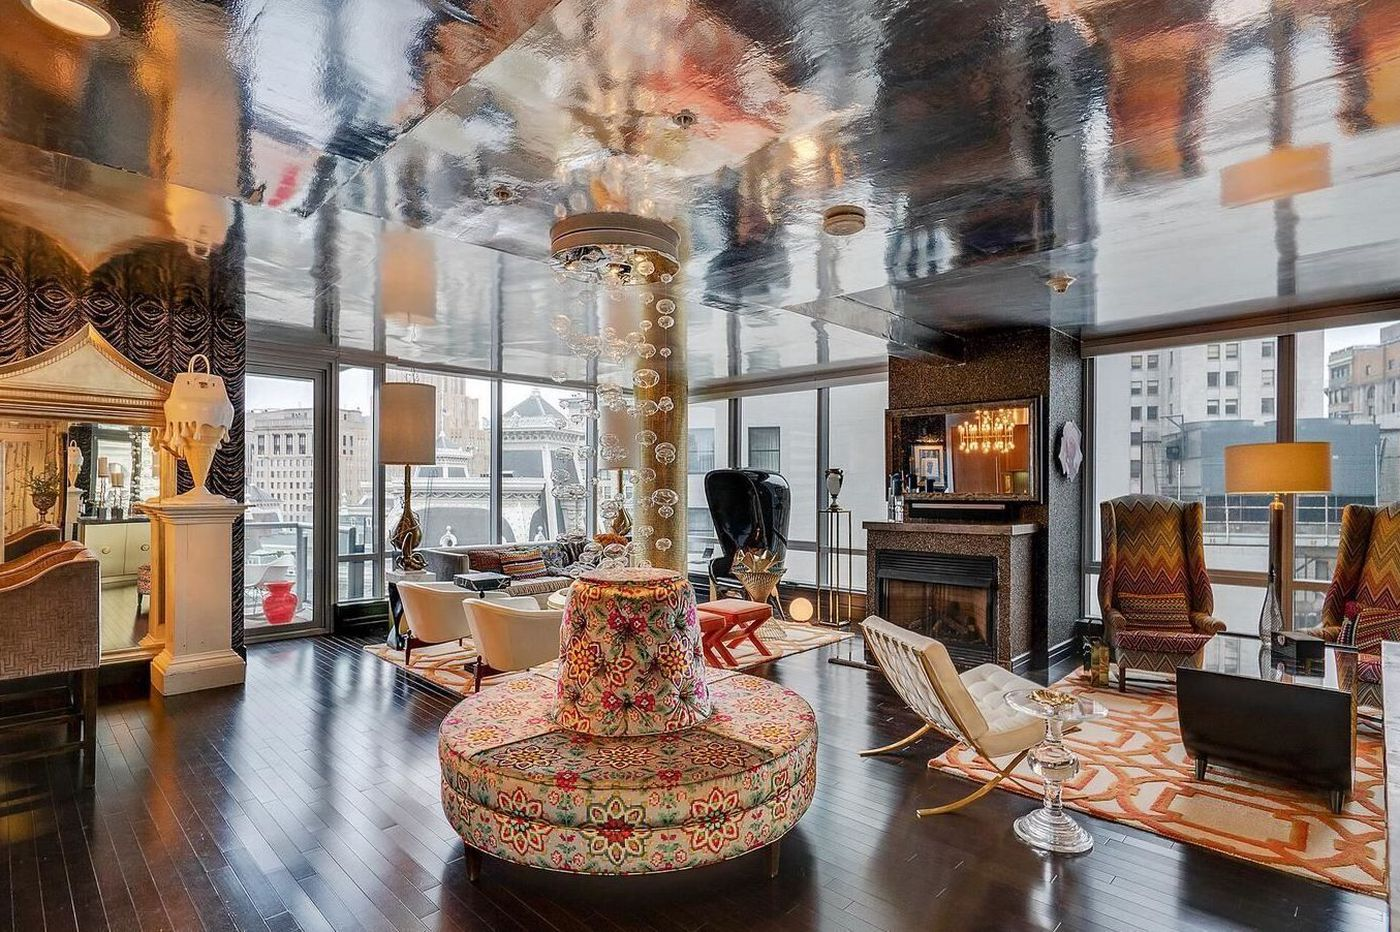 On the market: Ritz-Carlton condo inspired by Elton John for $1.75 Million